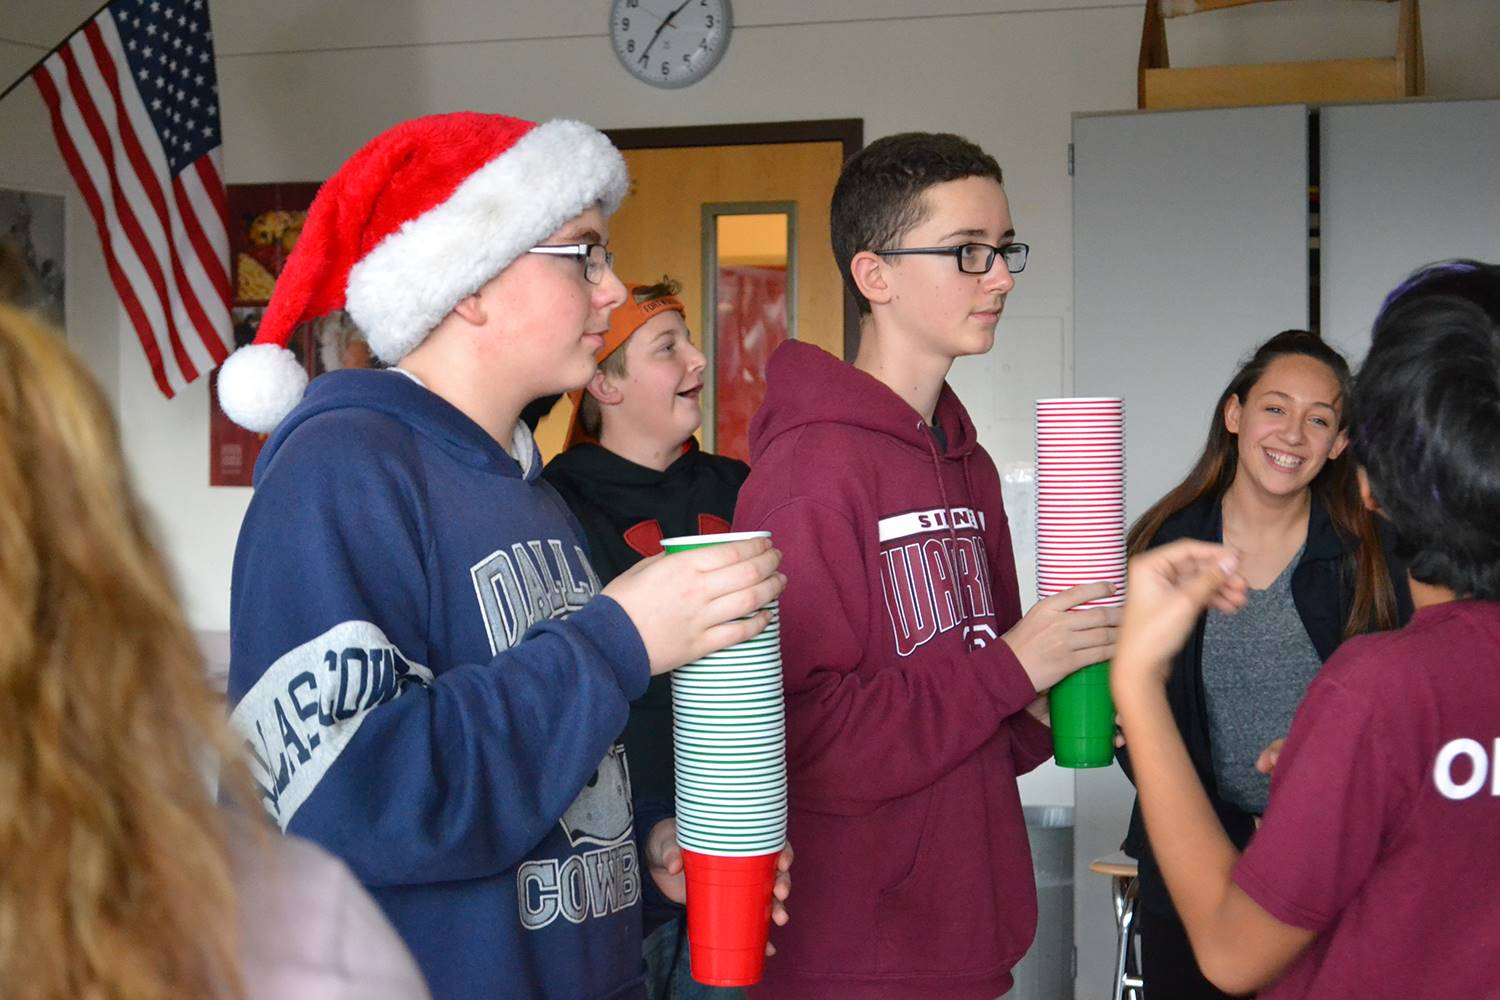 Minute to win it December 2018